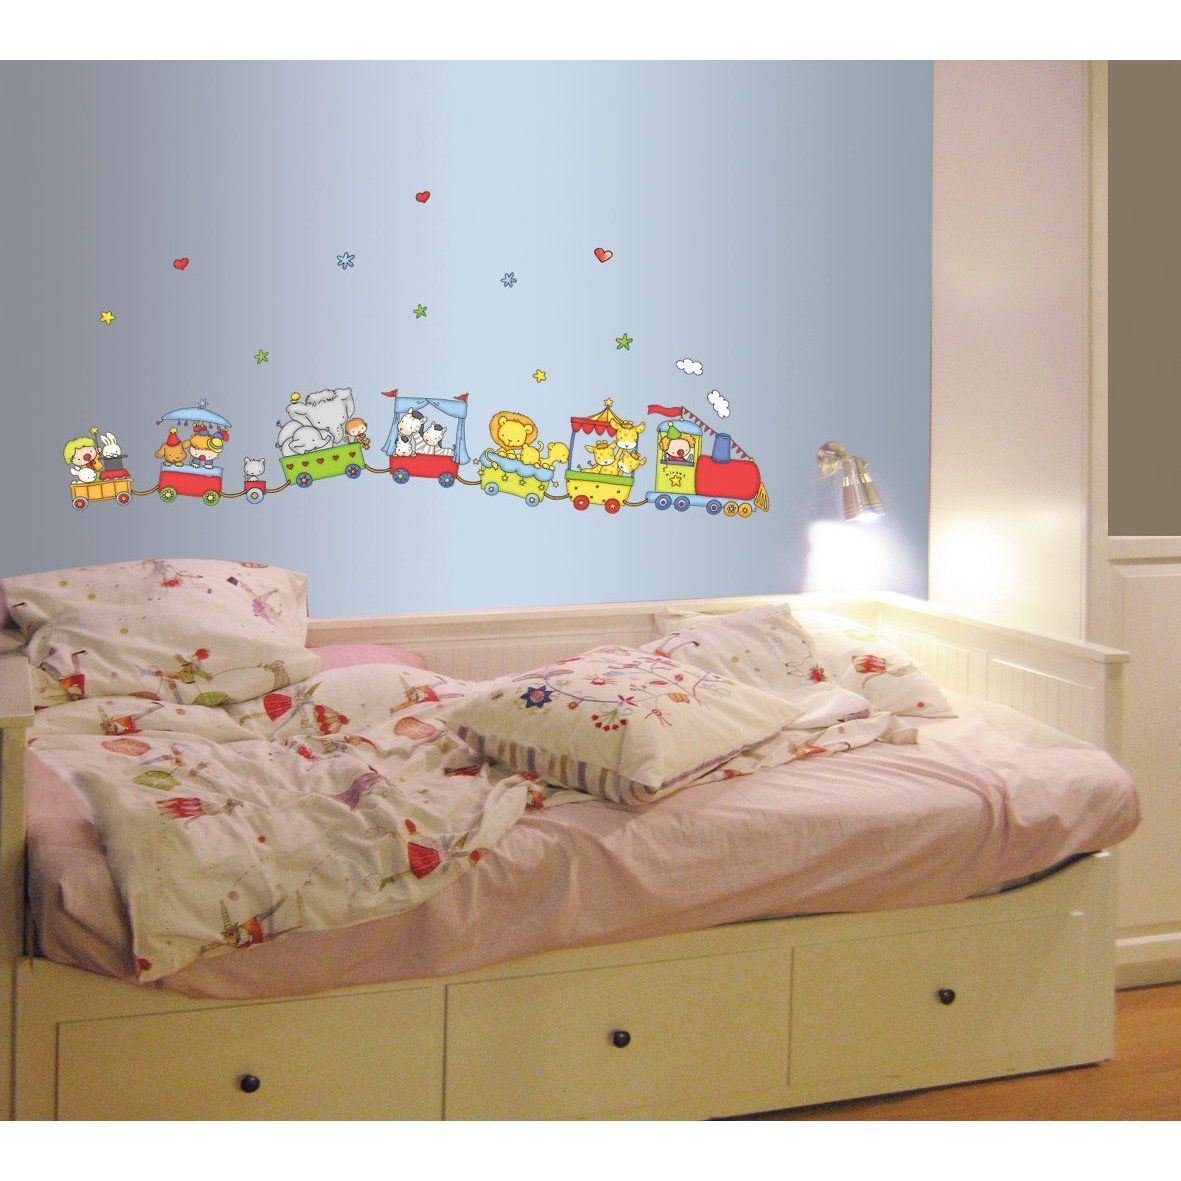 Bedroom wall decoration for kids - Cute Kids Bedroom Designing Ideas With Lovely Train Wall Decals In Colorful Nuance